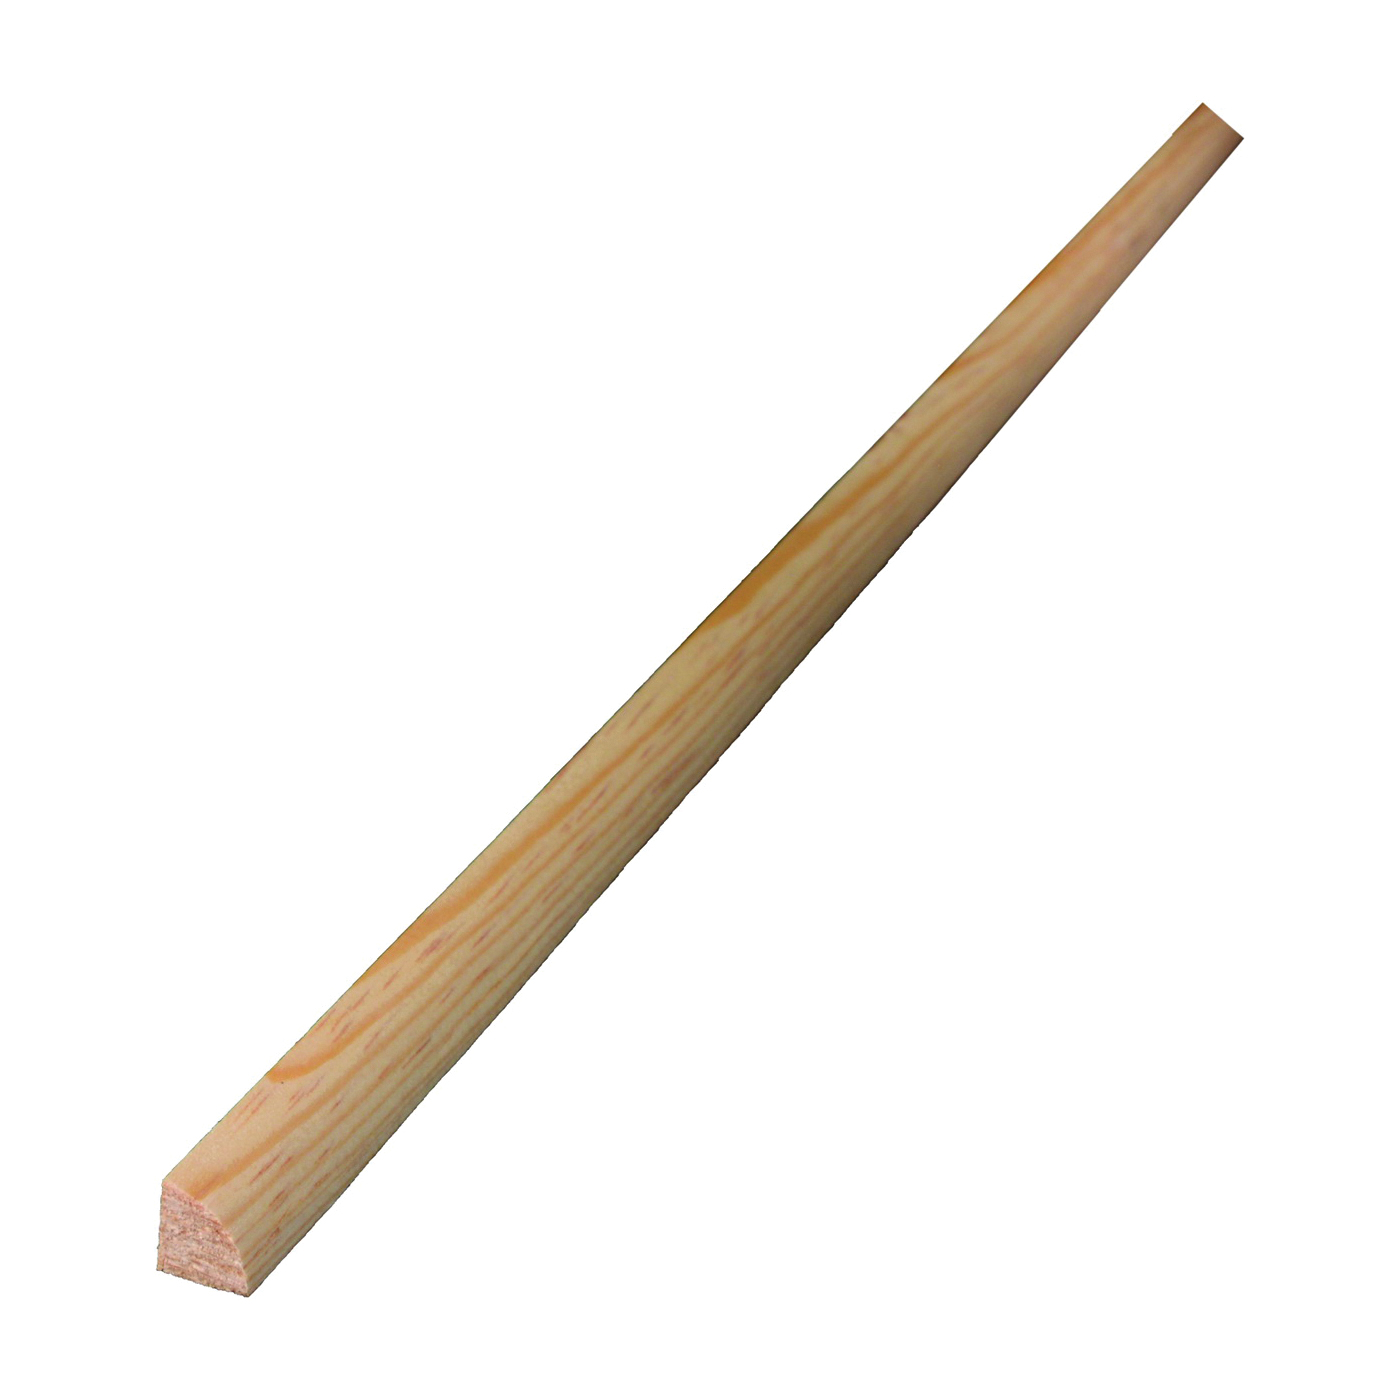 Picture of ALEXANDRIA Moulding 00100-20096C1 Quarter-Round Molding, 96 in L, 1/2 in W, Pine